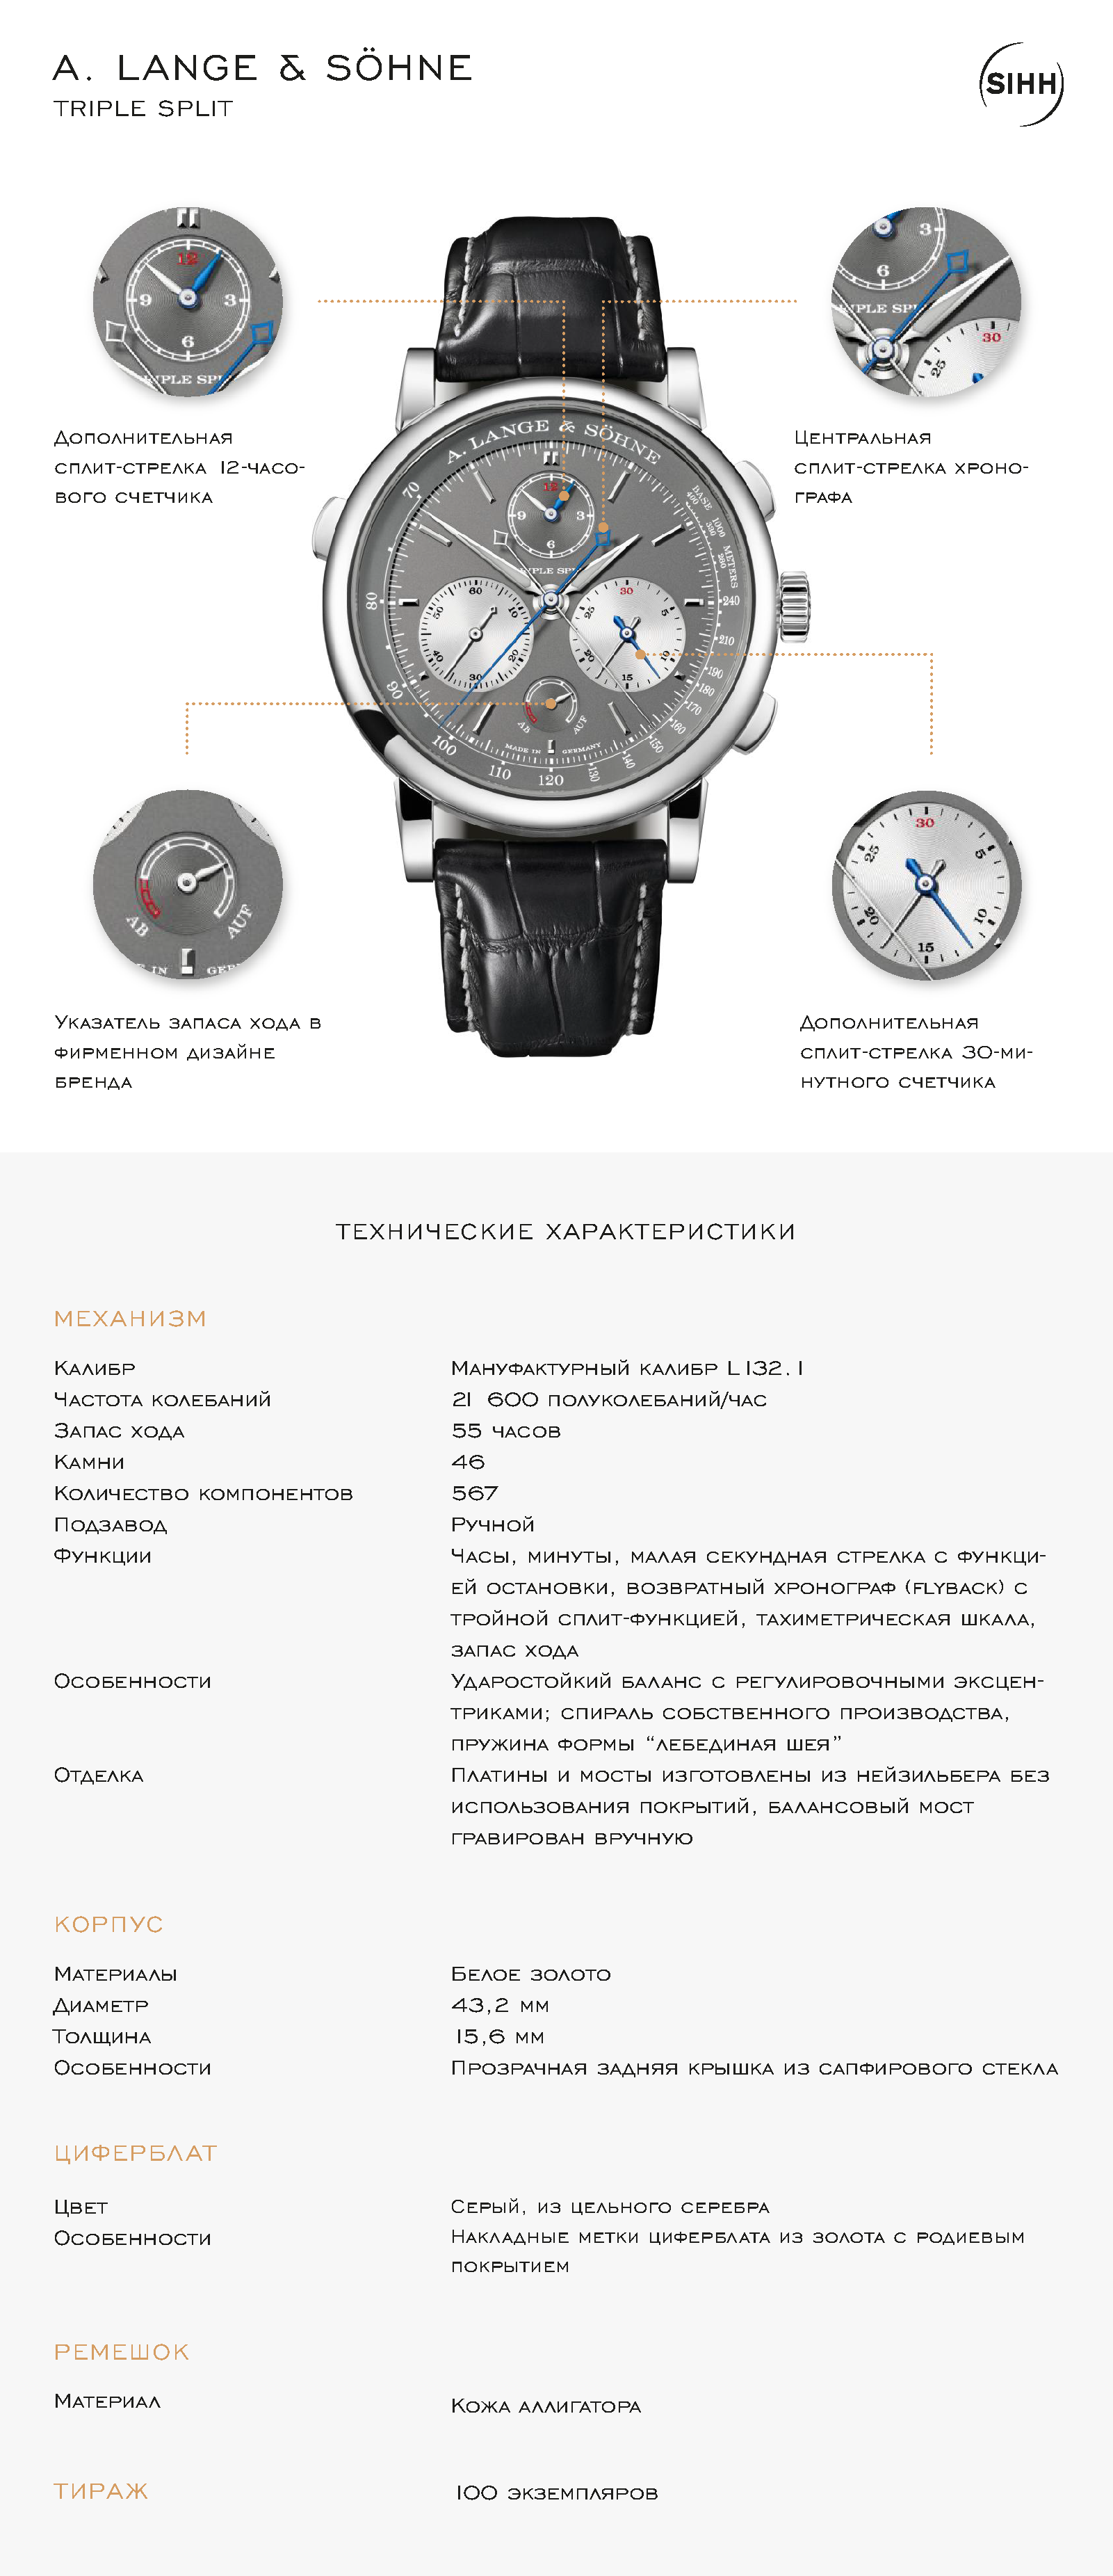 alange-and-sohne-triple-split-fen-watchalfavit